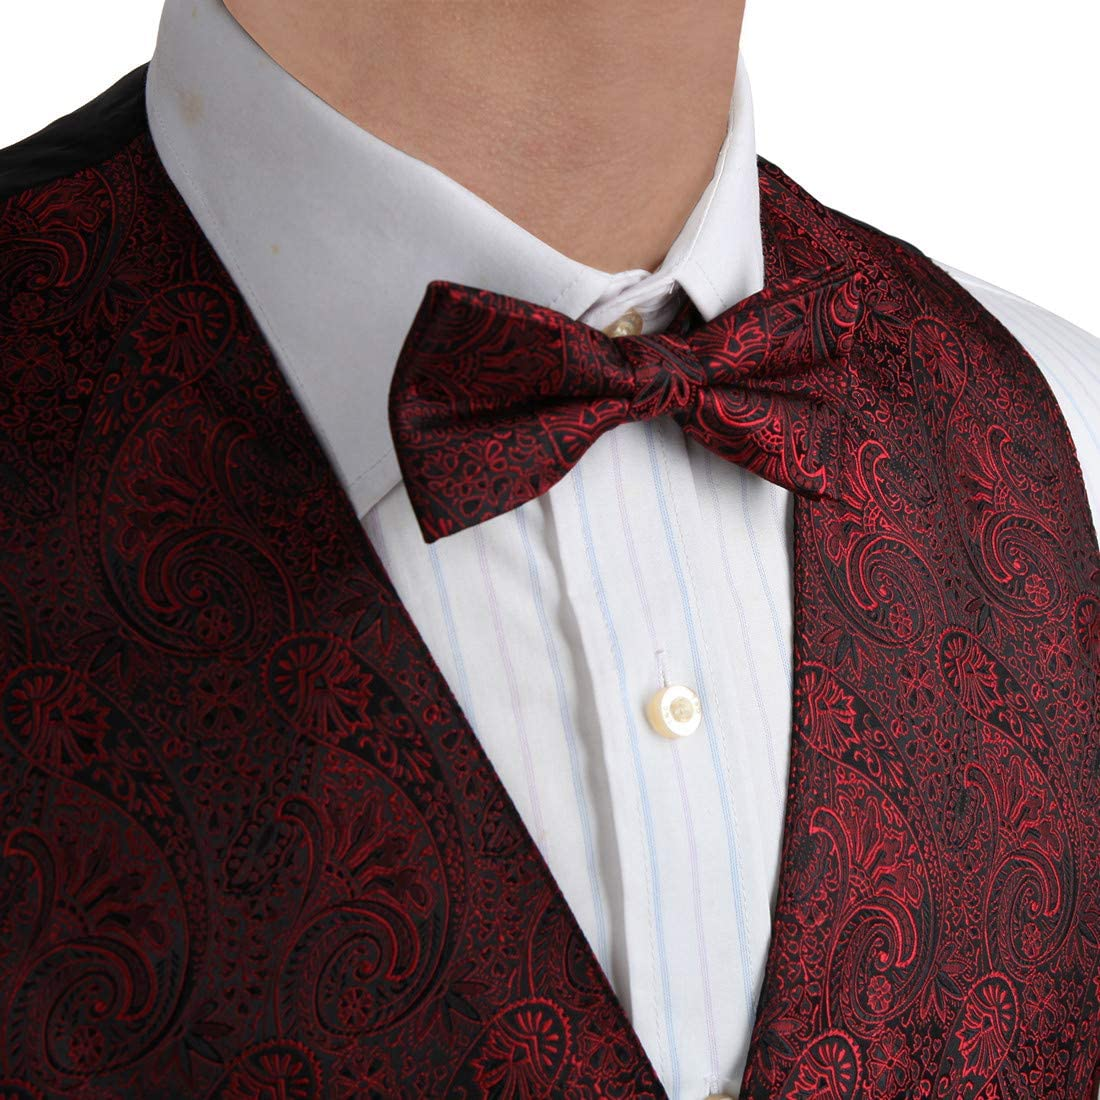 Epoint EGE2B01A-S Brown Paisley Microfiber Waistcoat Pre-tied Bow Tie Set Graduation Gift